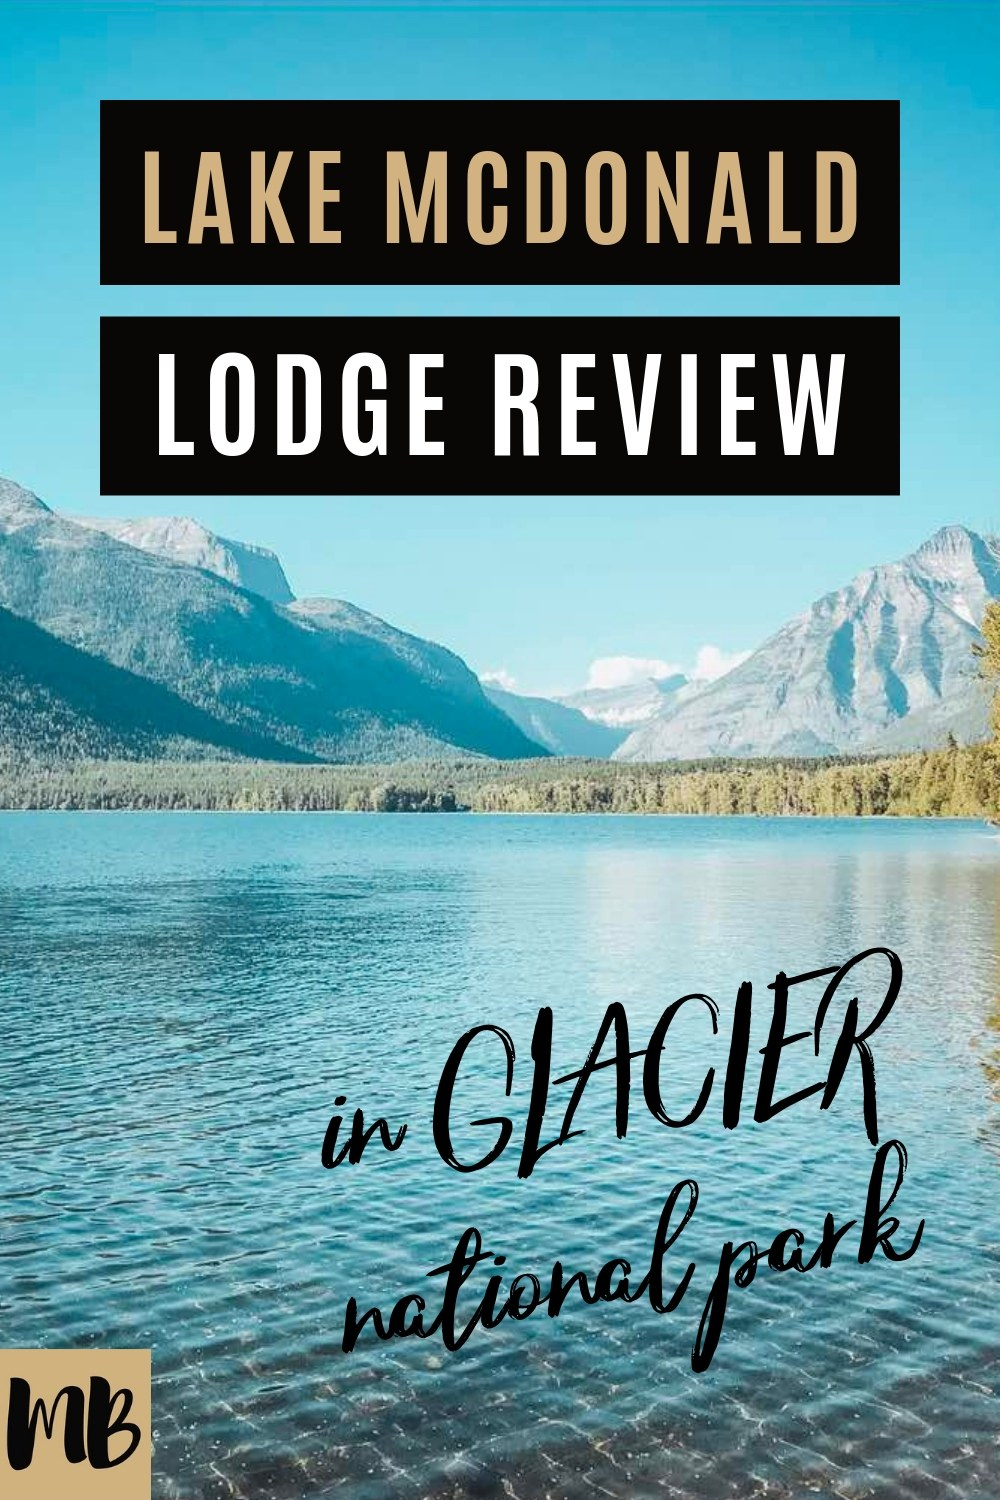 Lake McDonald Lodge Review in Glacier National Park is beautiful and an amazing place to stay in the park